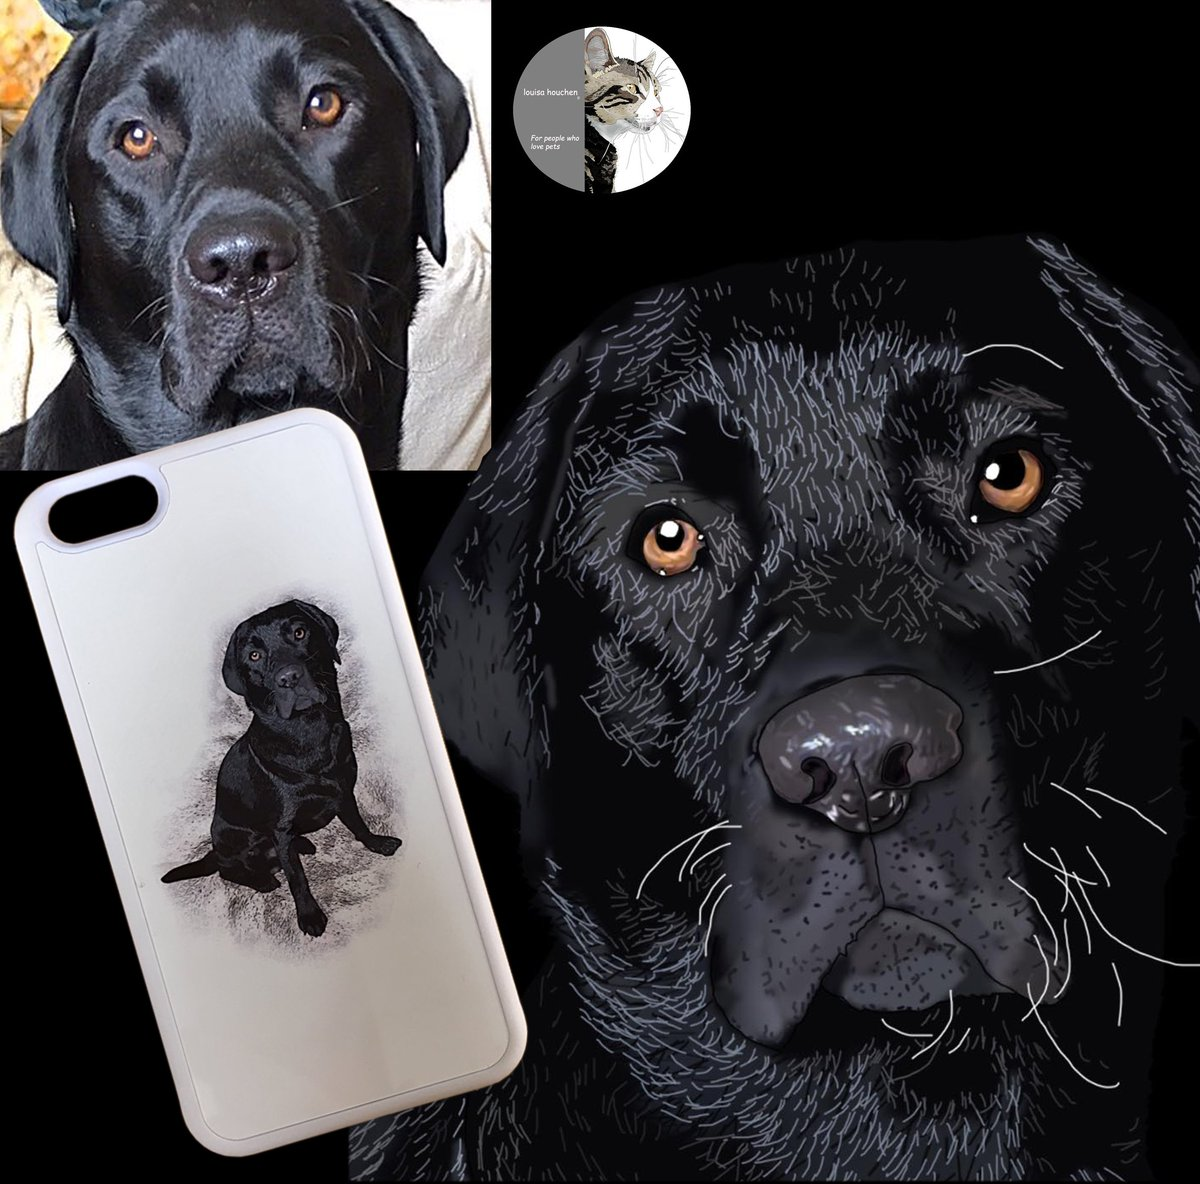 Pet portraits on products  https:// louisahouchen.artweb.com /     Check out my prices and reviews, you won't be disappointed!  #UKGiftAM #weekendvibes #art<br>http://pic.twitter.com/84RrIGOBuJ